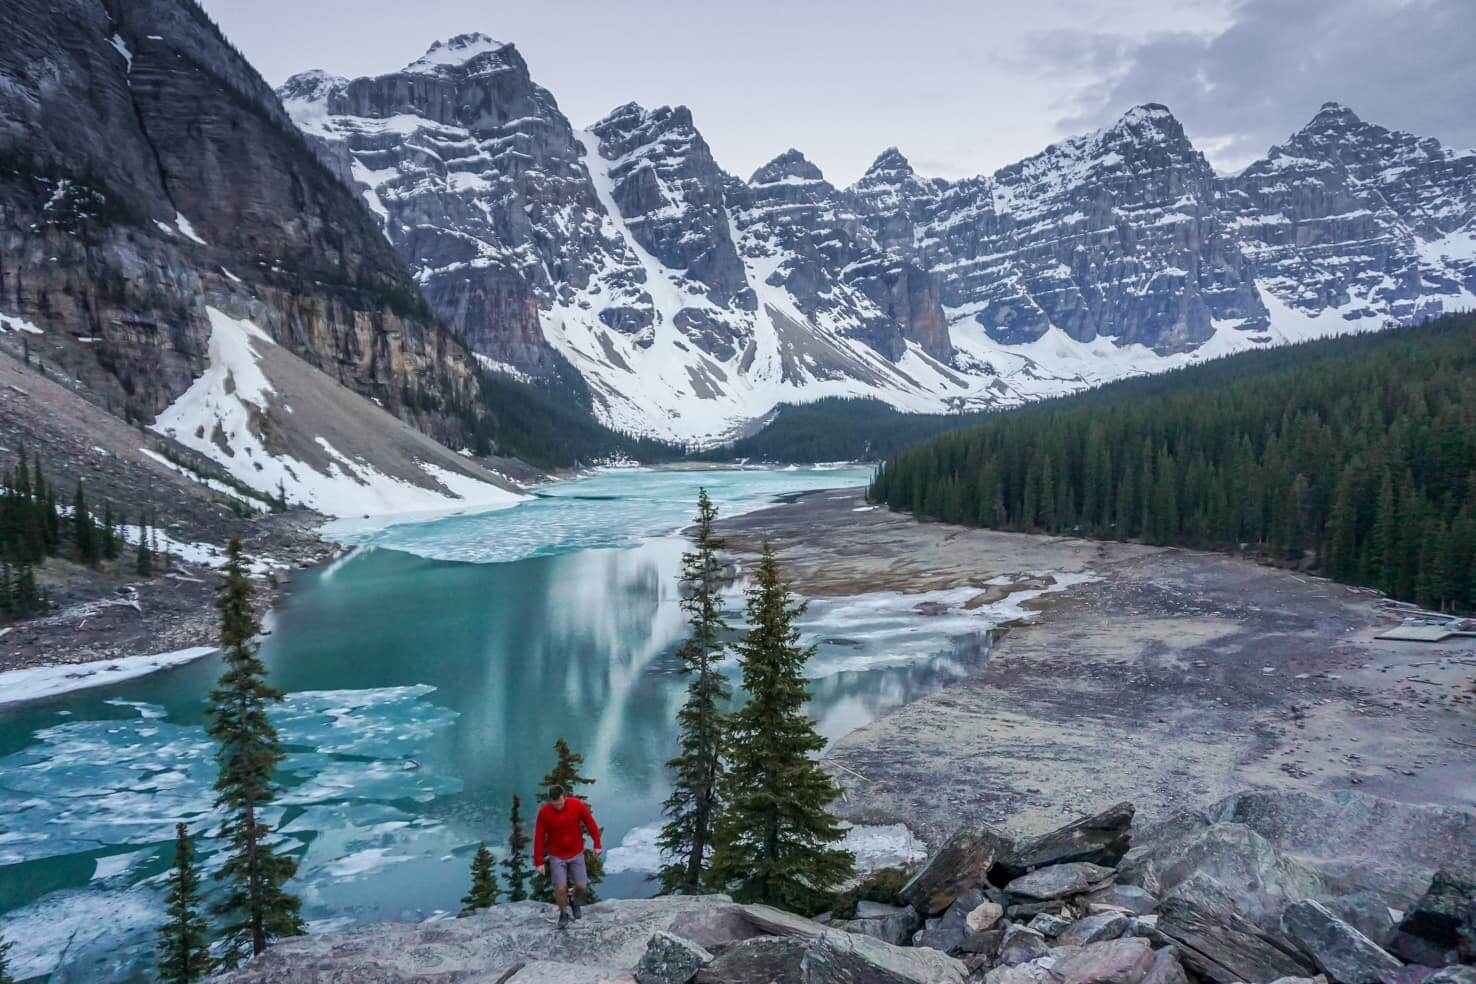 Banff itinerary for 3 days - Moraine Lake